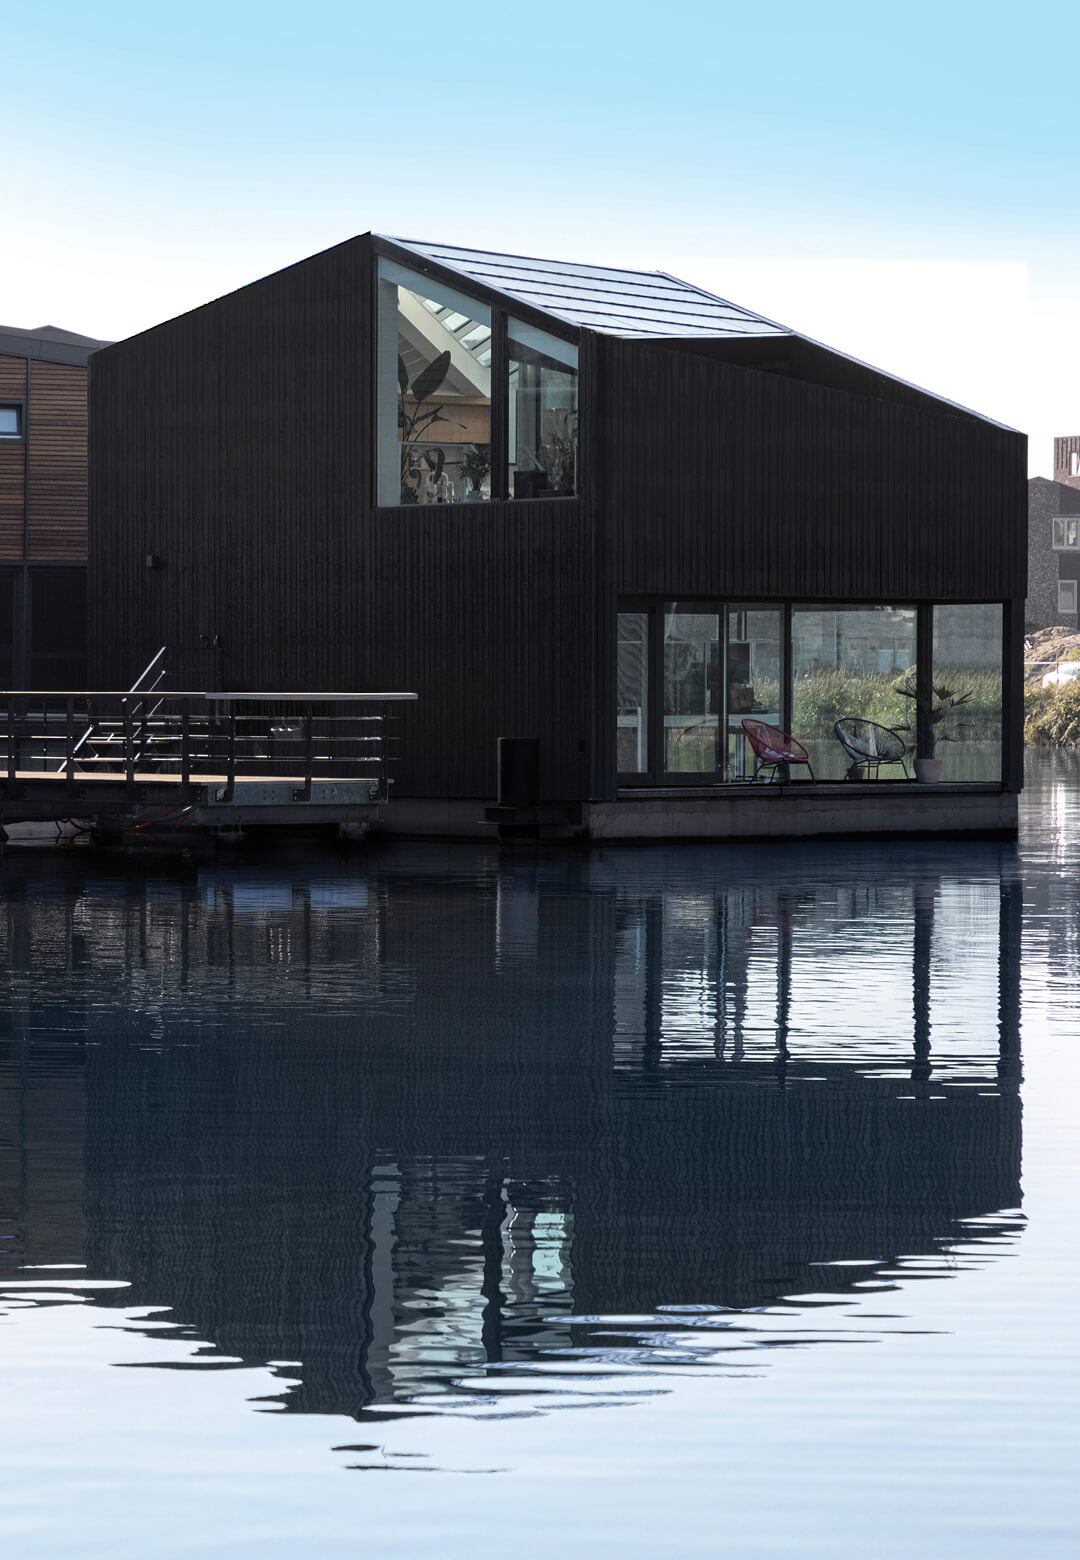 Floating Home at Schoonschip in Amsterdam | Floating homes designed by i29 architects | STIRworld